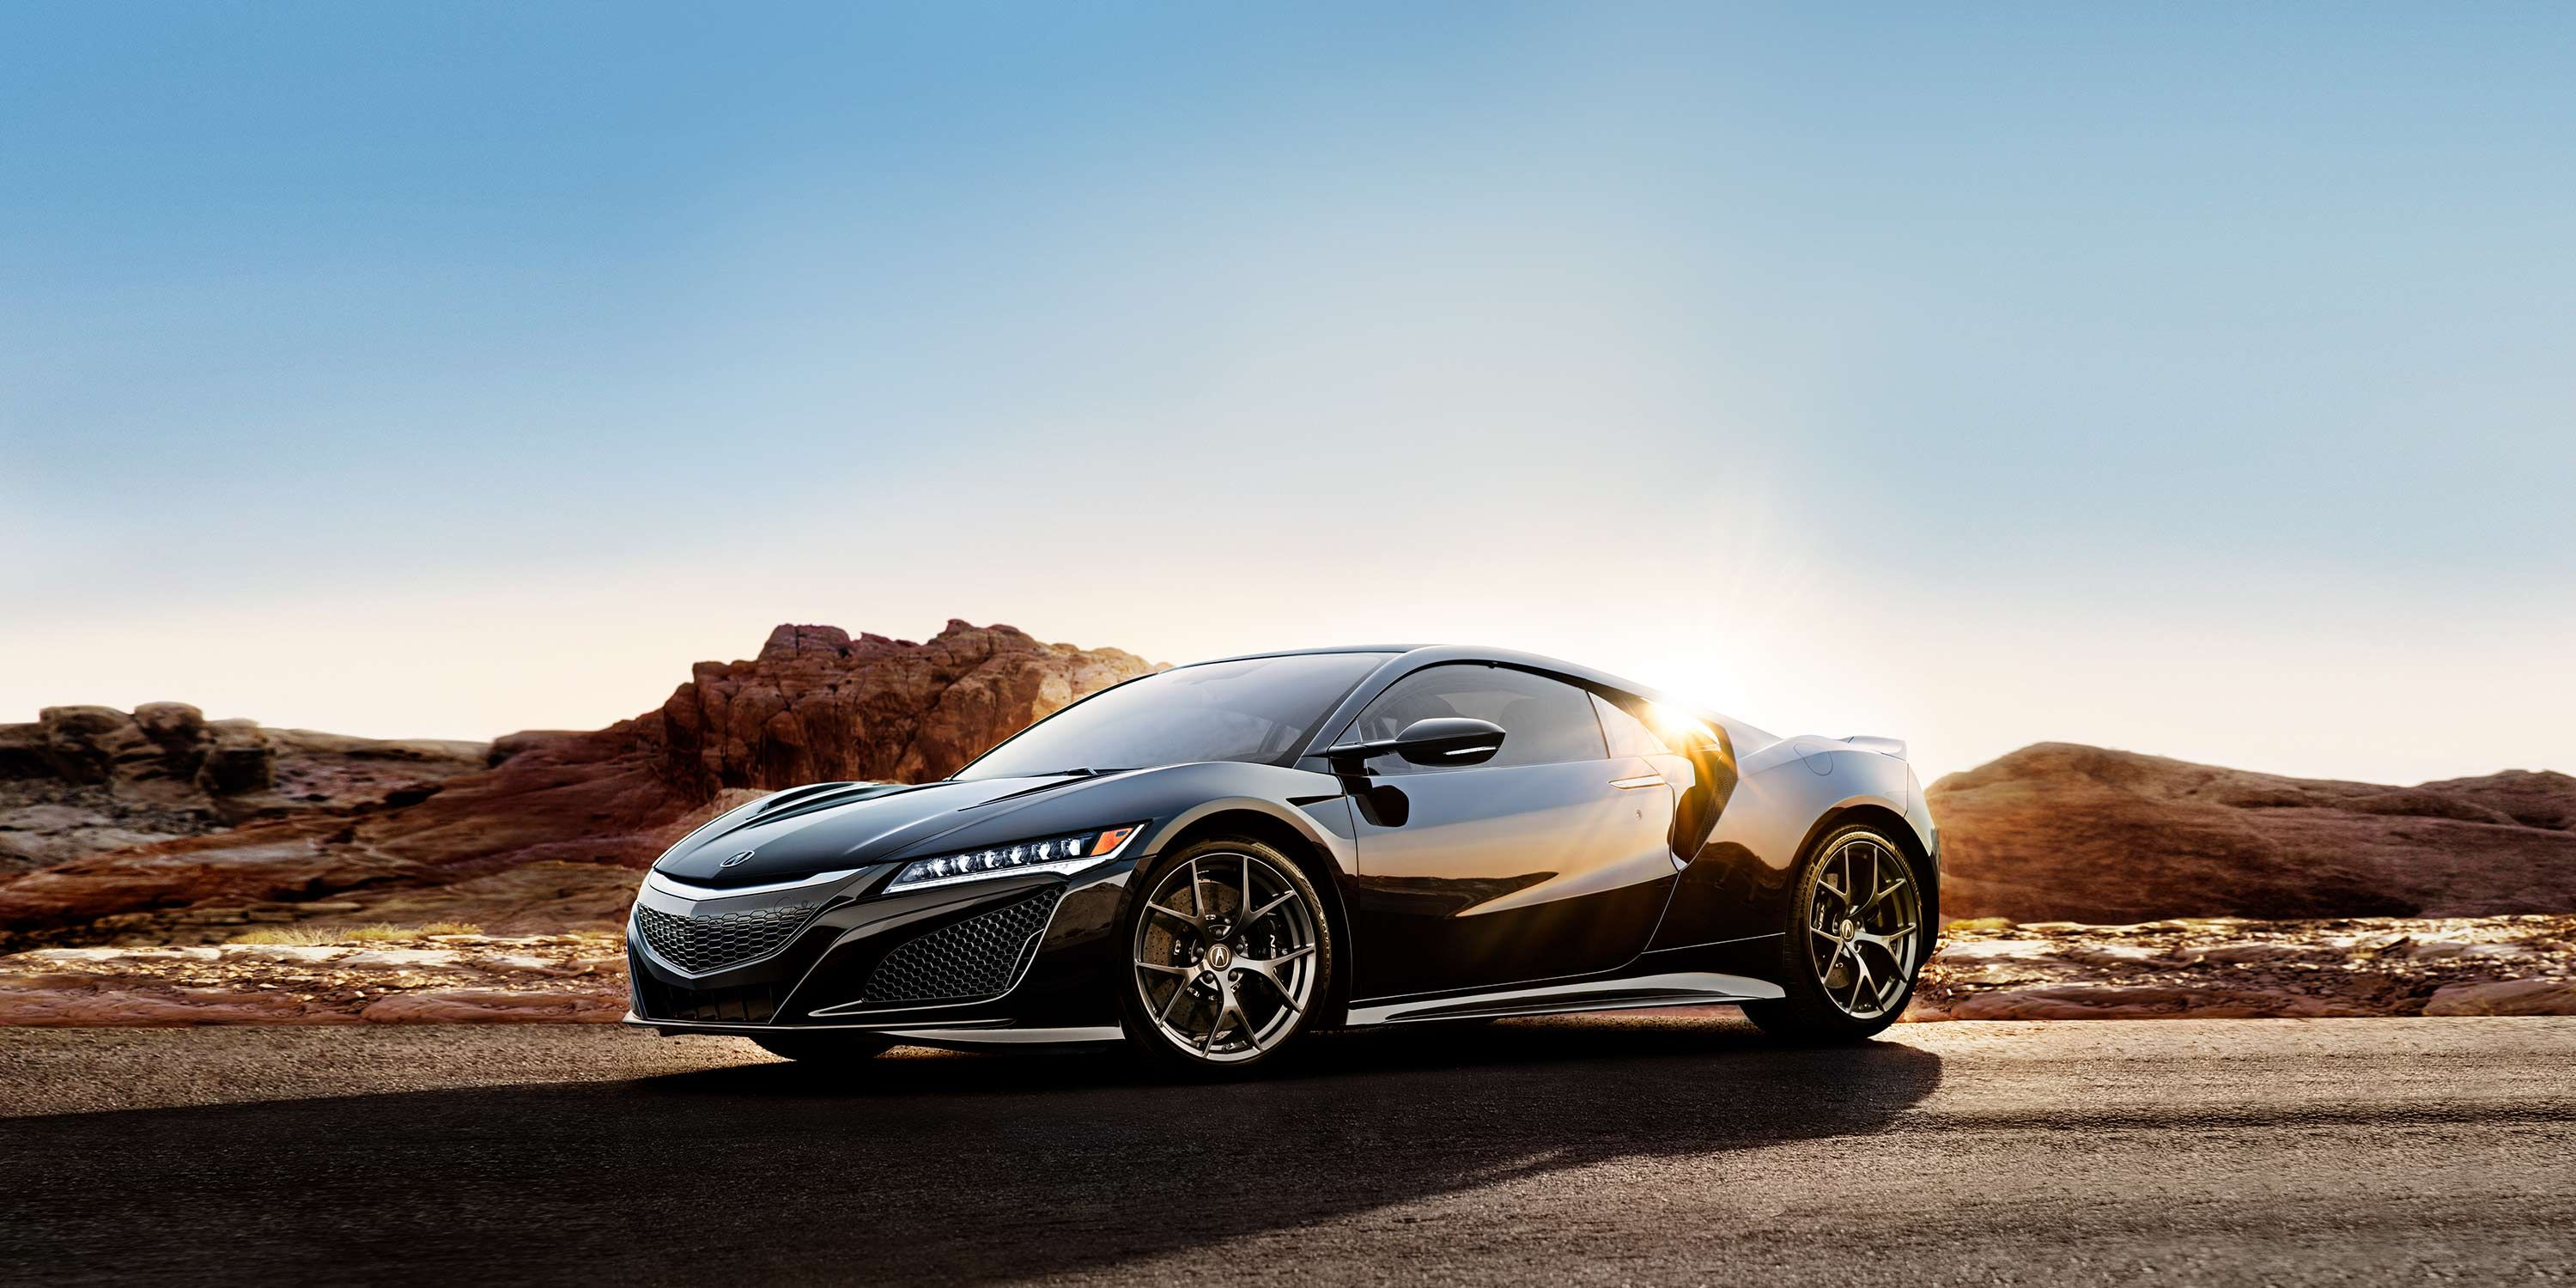 2020 Acura Integra Type R Engine Interior Price Most Present Reports Propose That Asia Producer Offers Undoubtedly 1 Of Integra Type R Acura Integra Acura